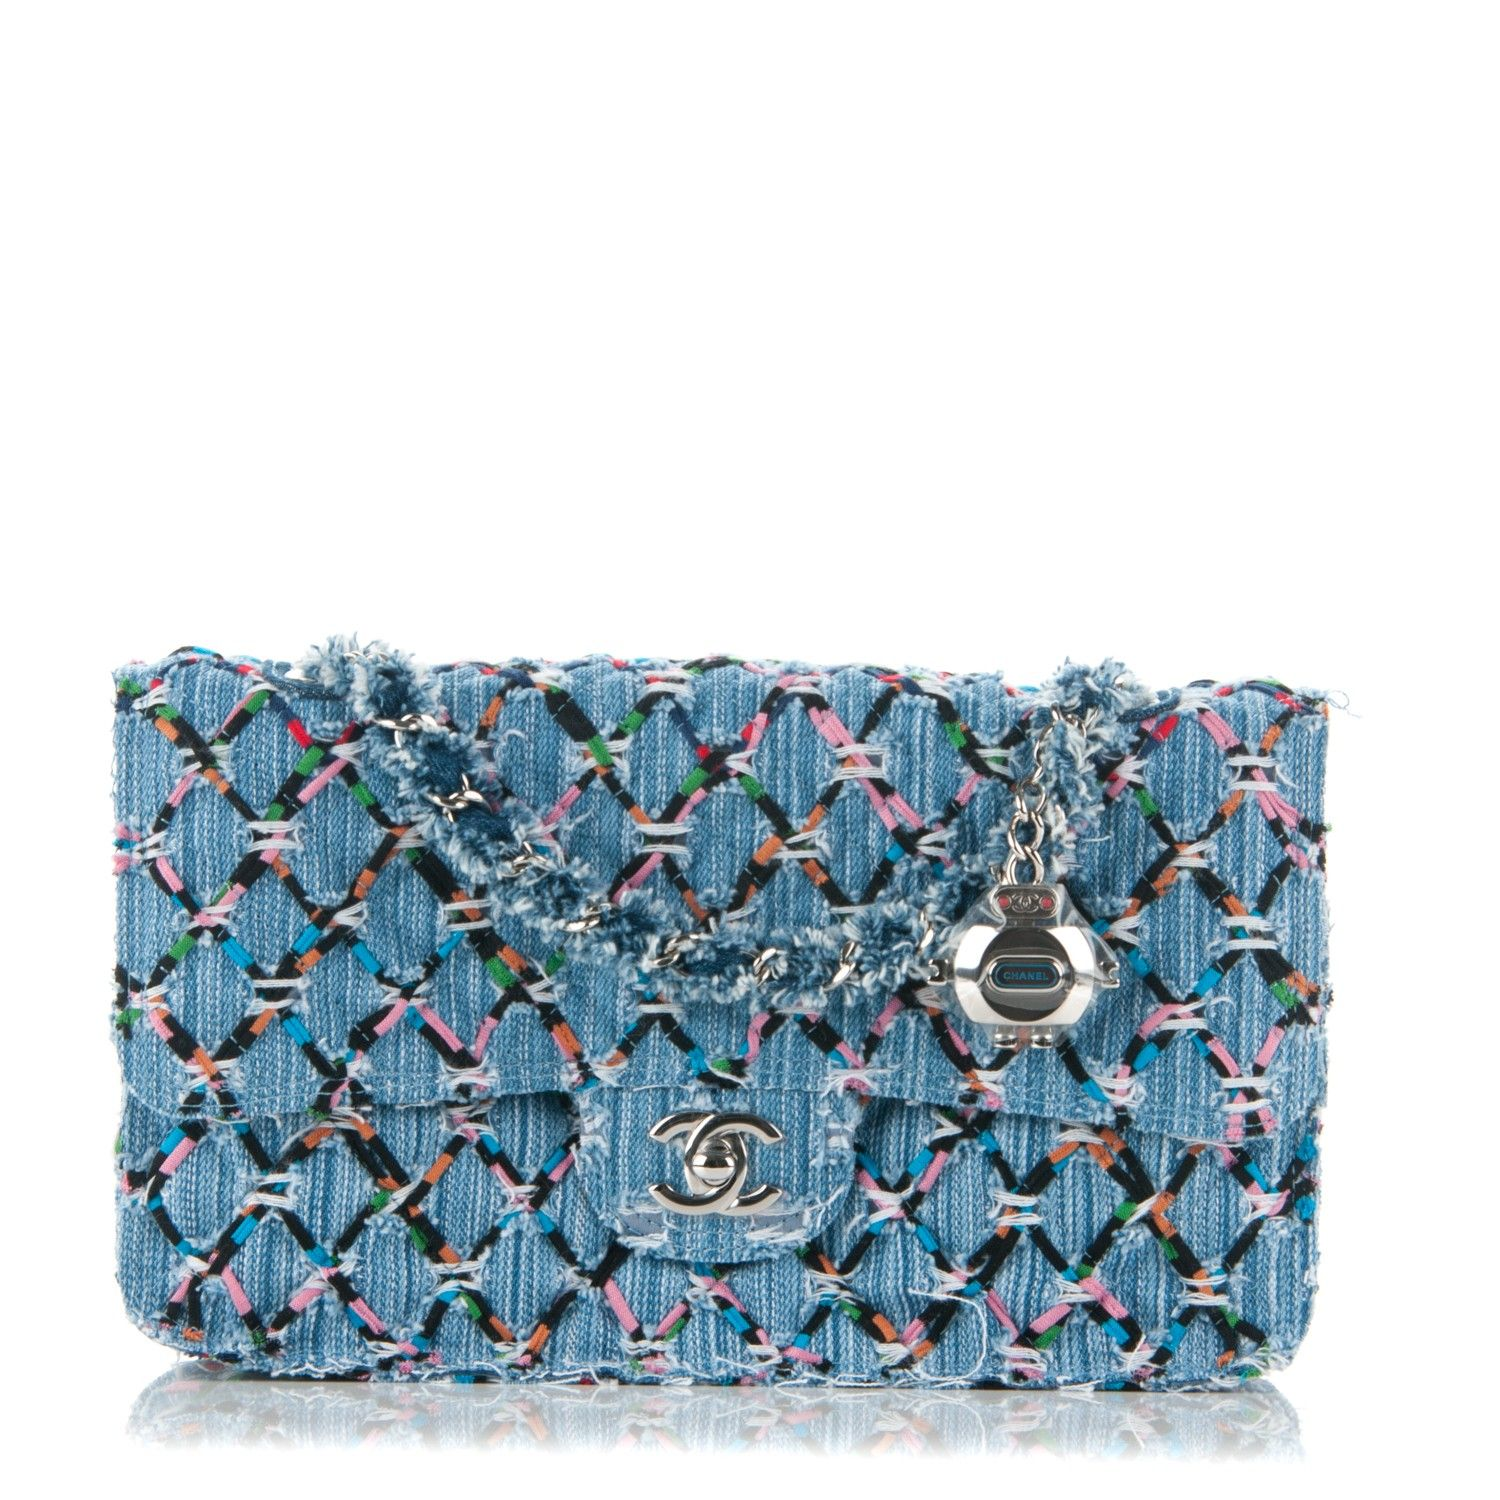 75c228c964f8 This is an authentic CHANEL Woven Denim Quilted Medium Flap in Blue and  Multicolor. This